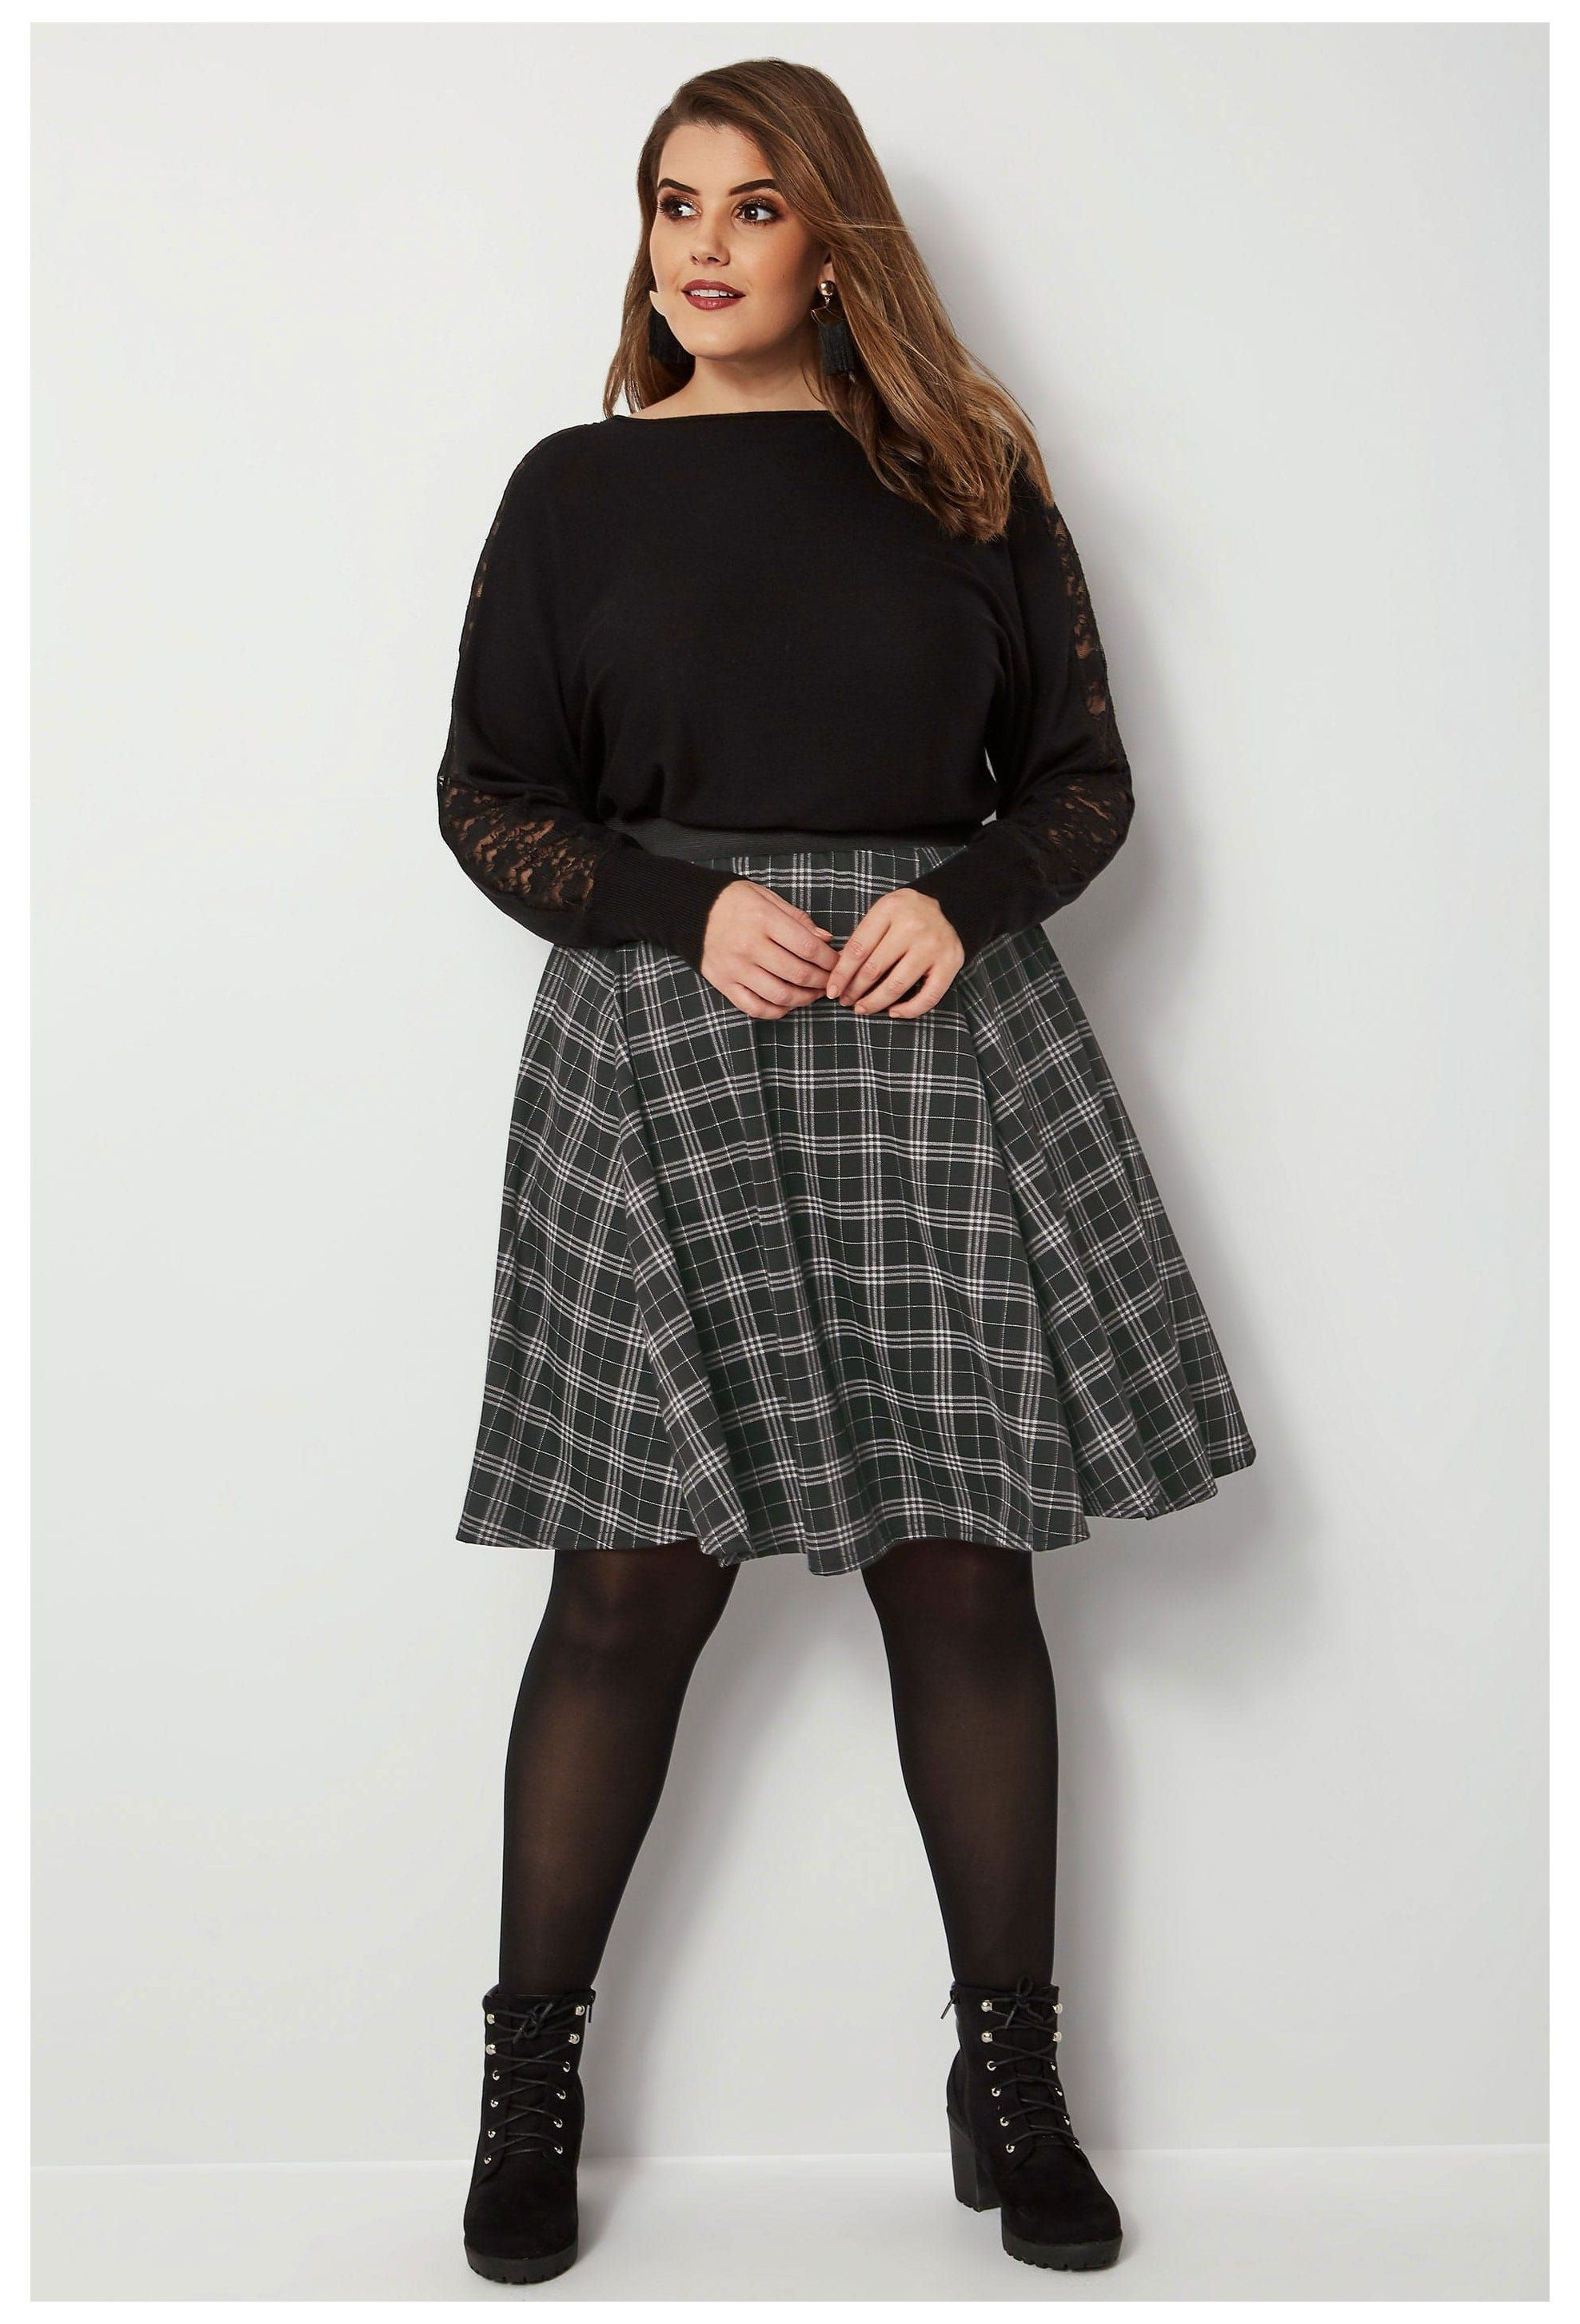 Plus Size Skater Skirts Ladies Skater Skirts Yours Clothing Skort Plus Size Skortplussize Black Ch In 2020 Plus Size Fashion Plus Size Outfits Plus Size Tights